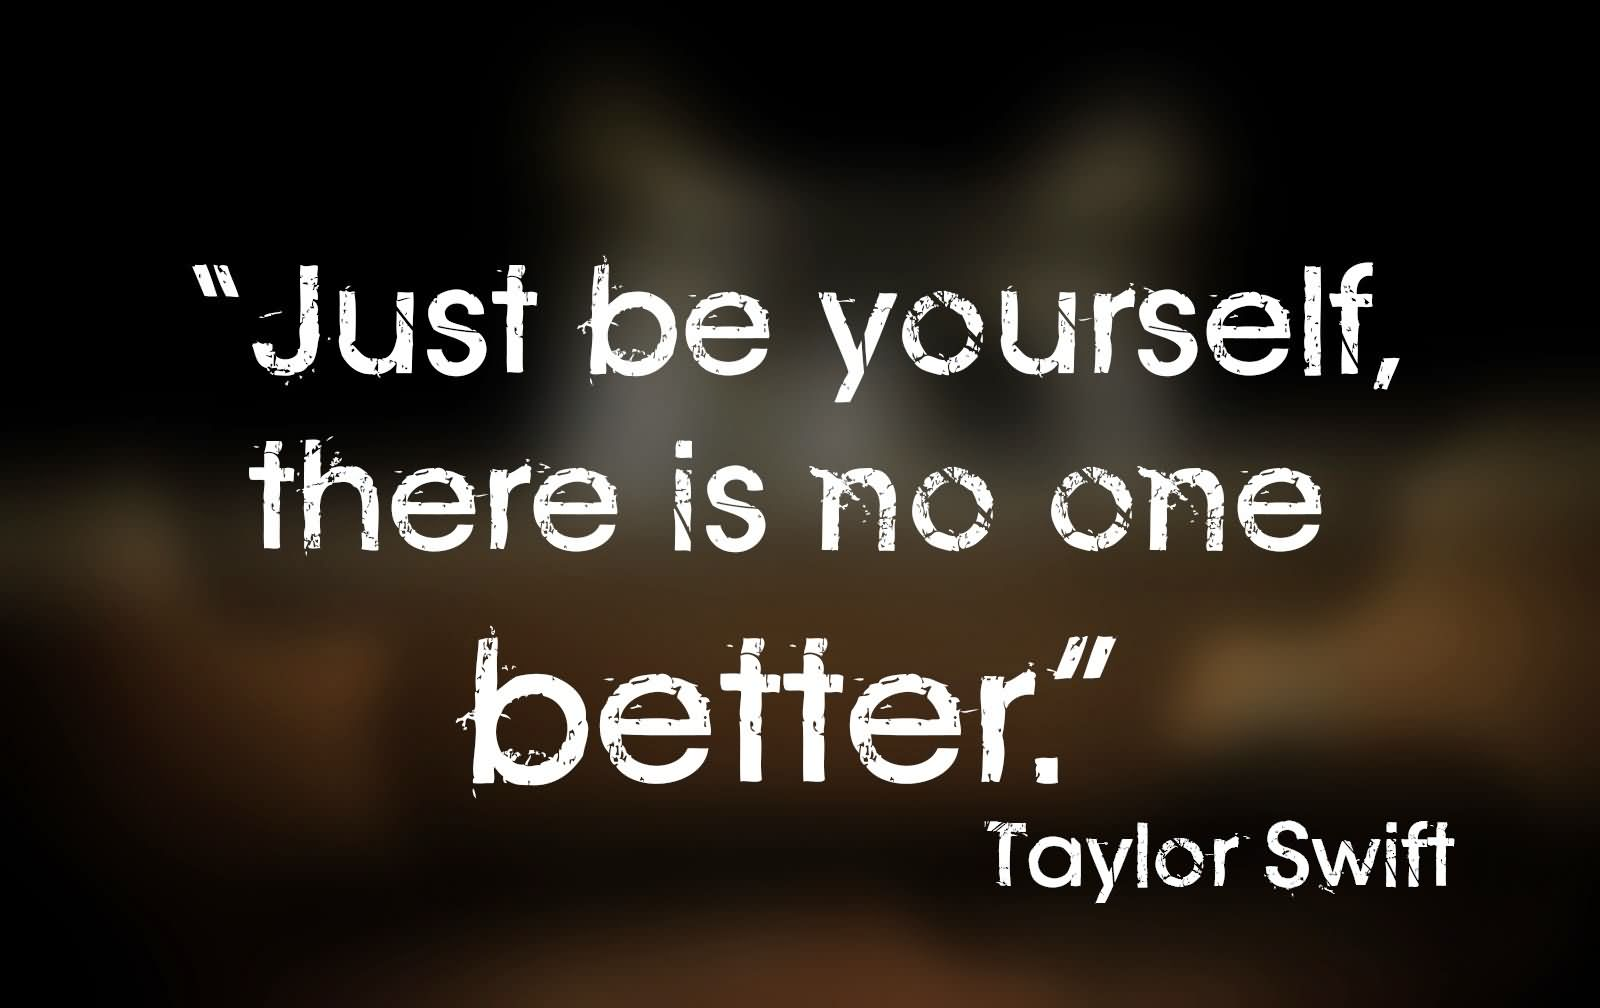 Just be yourself, there is no one better. Taylor Swift